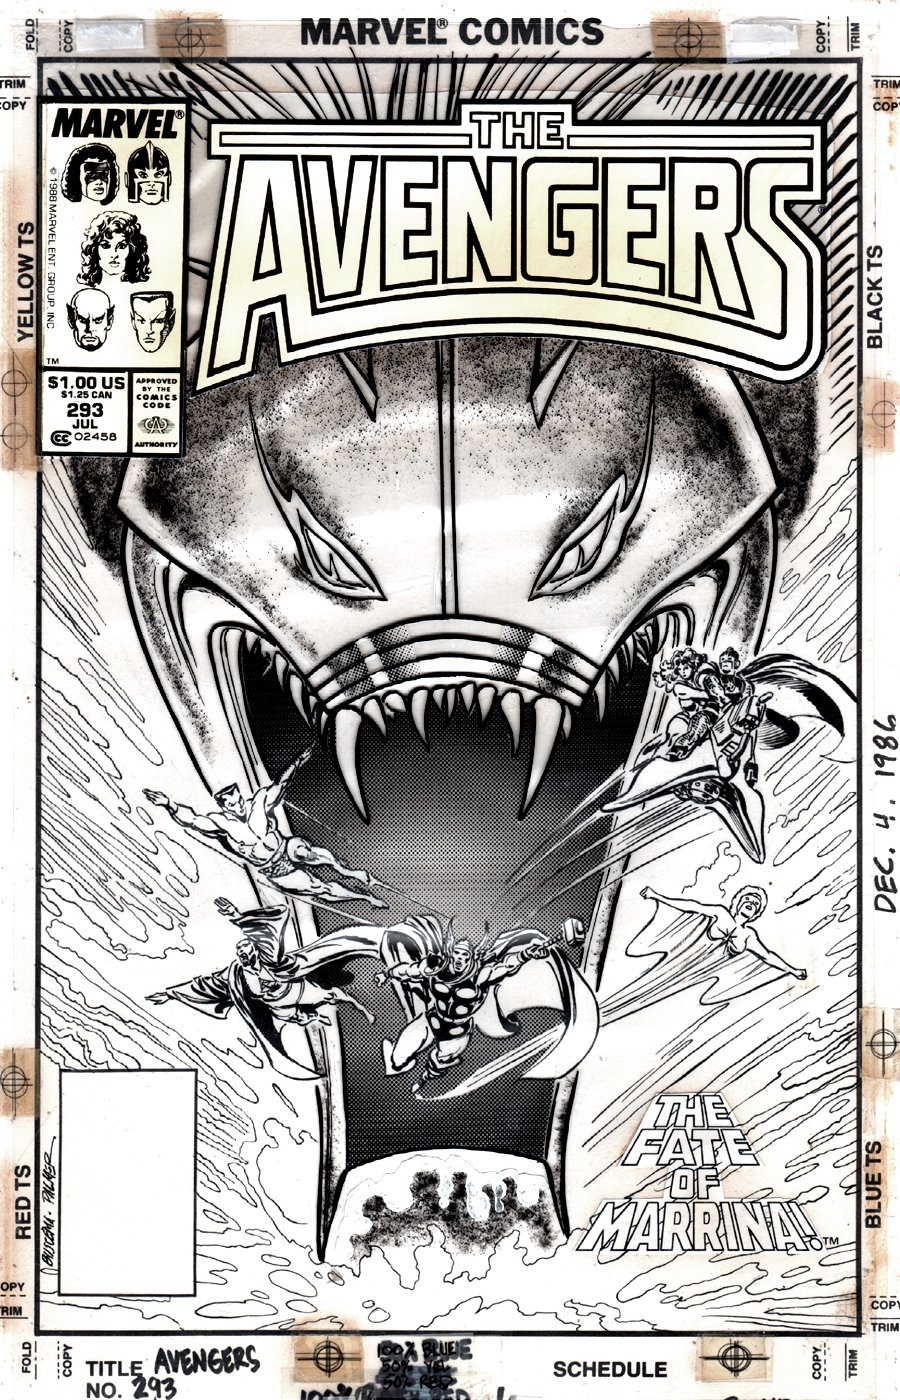 Avengers #293 Cover (6 AVENGERS DRAWN!) 1988